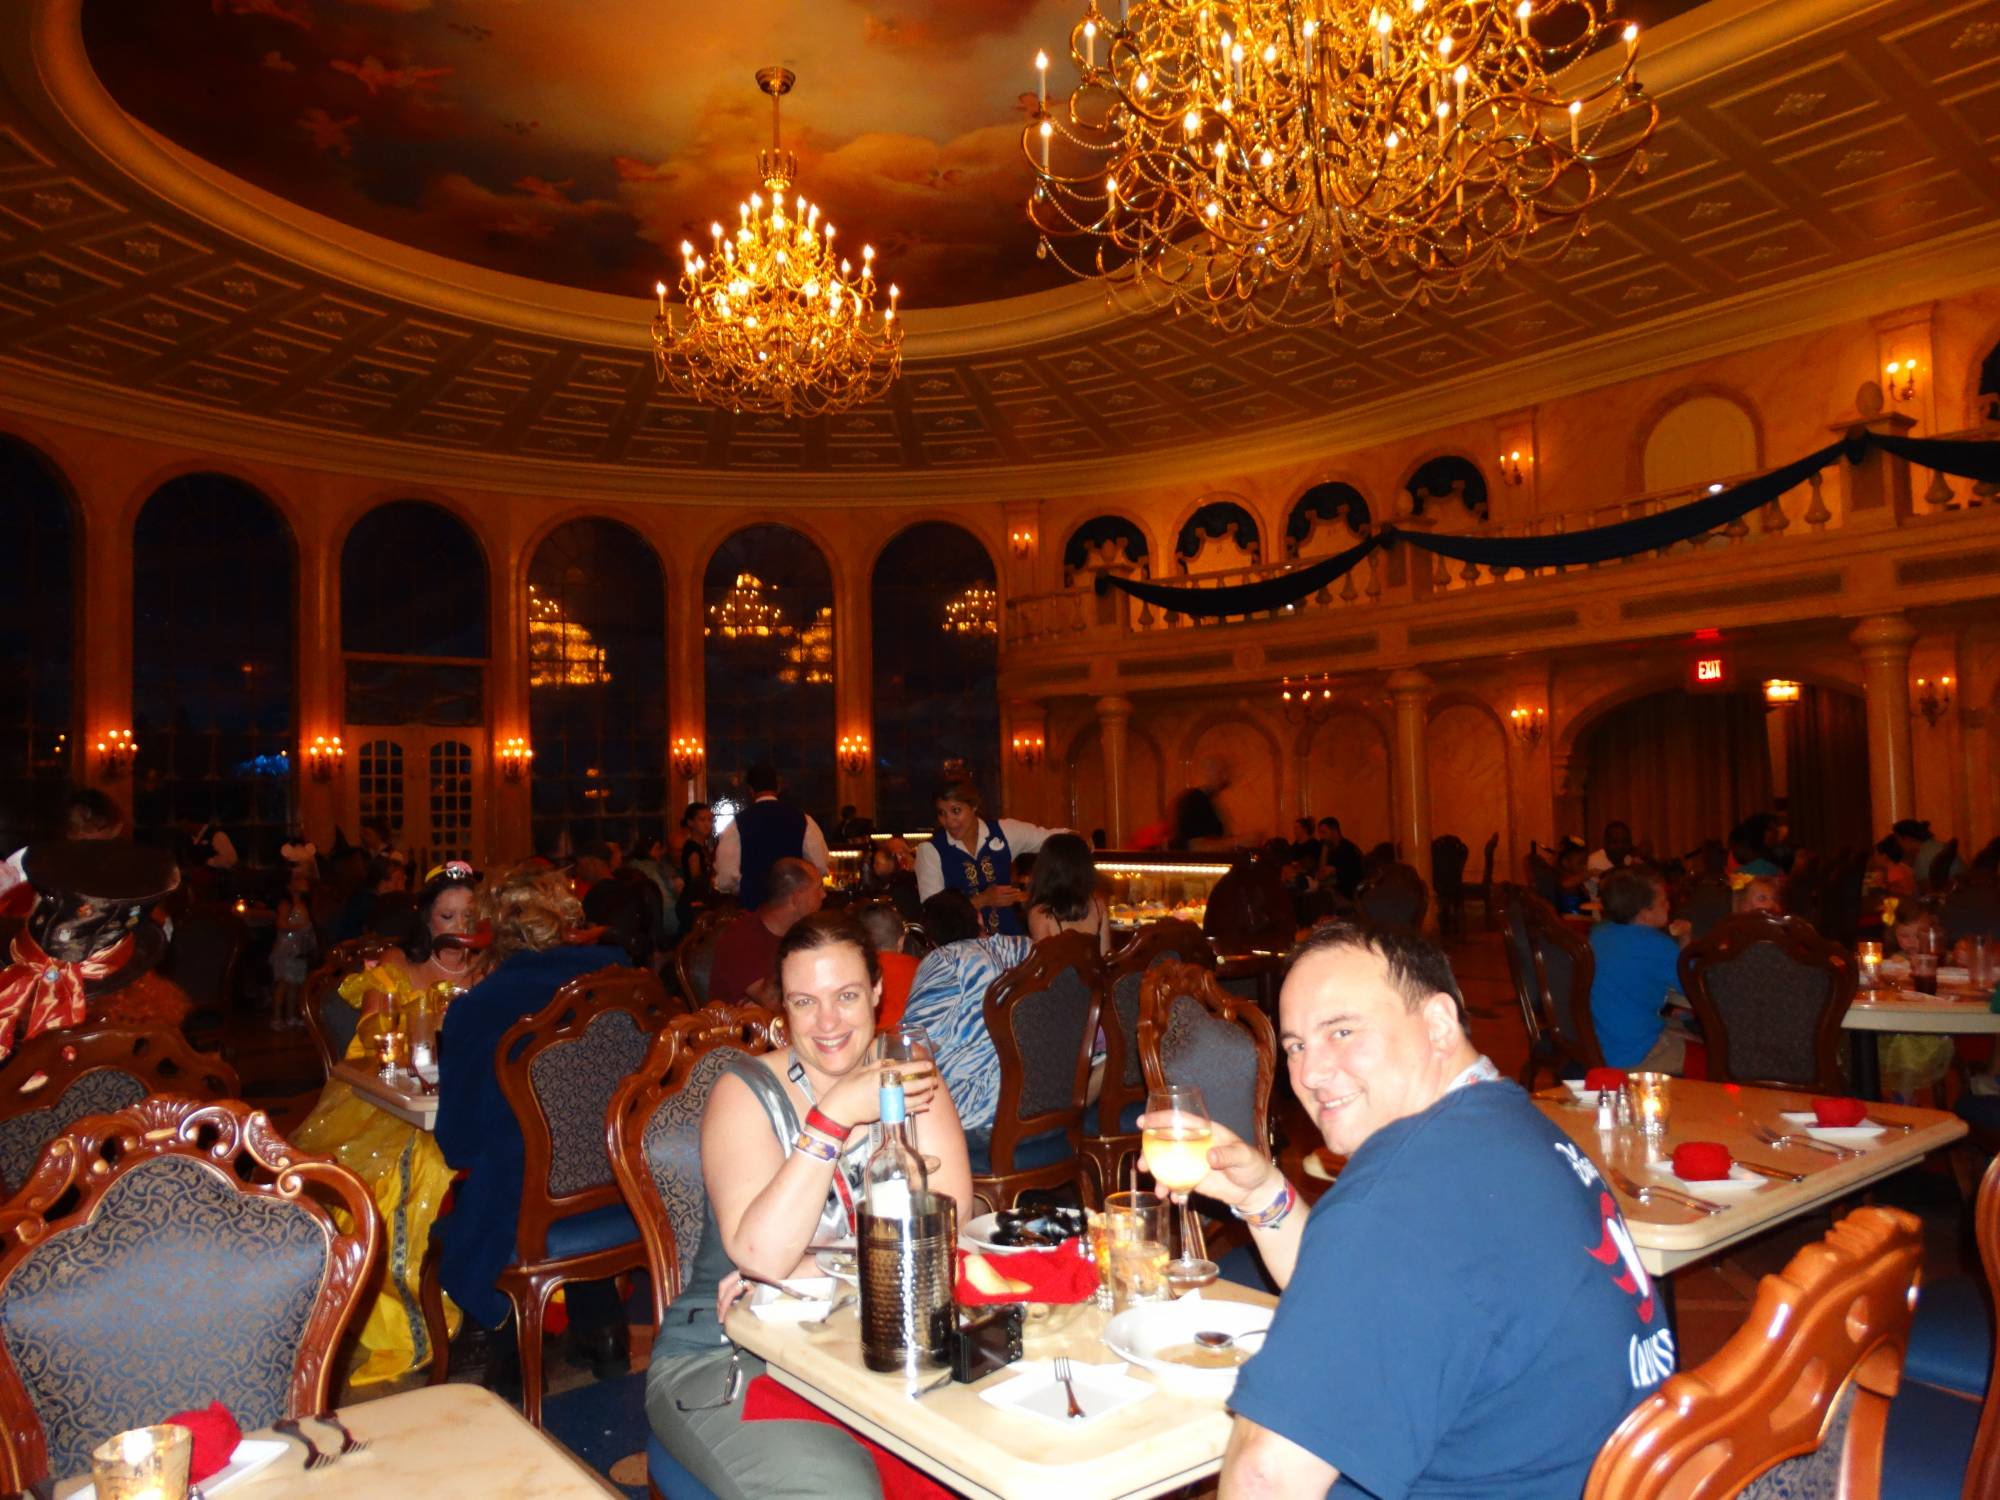 Cheryl Pendry shares her Top 10 favorite restaurants at Walt Disney World | PassPorter.com